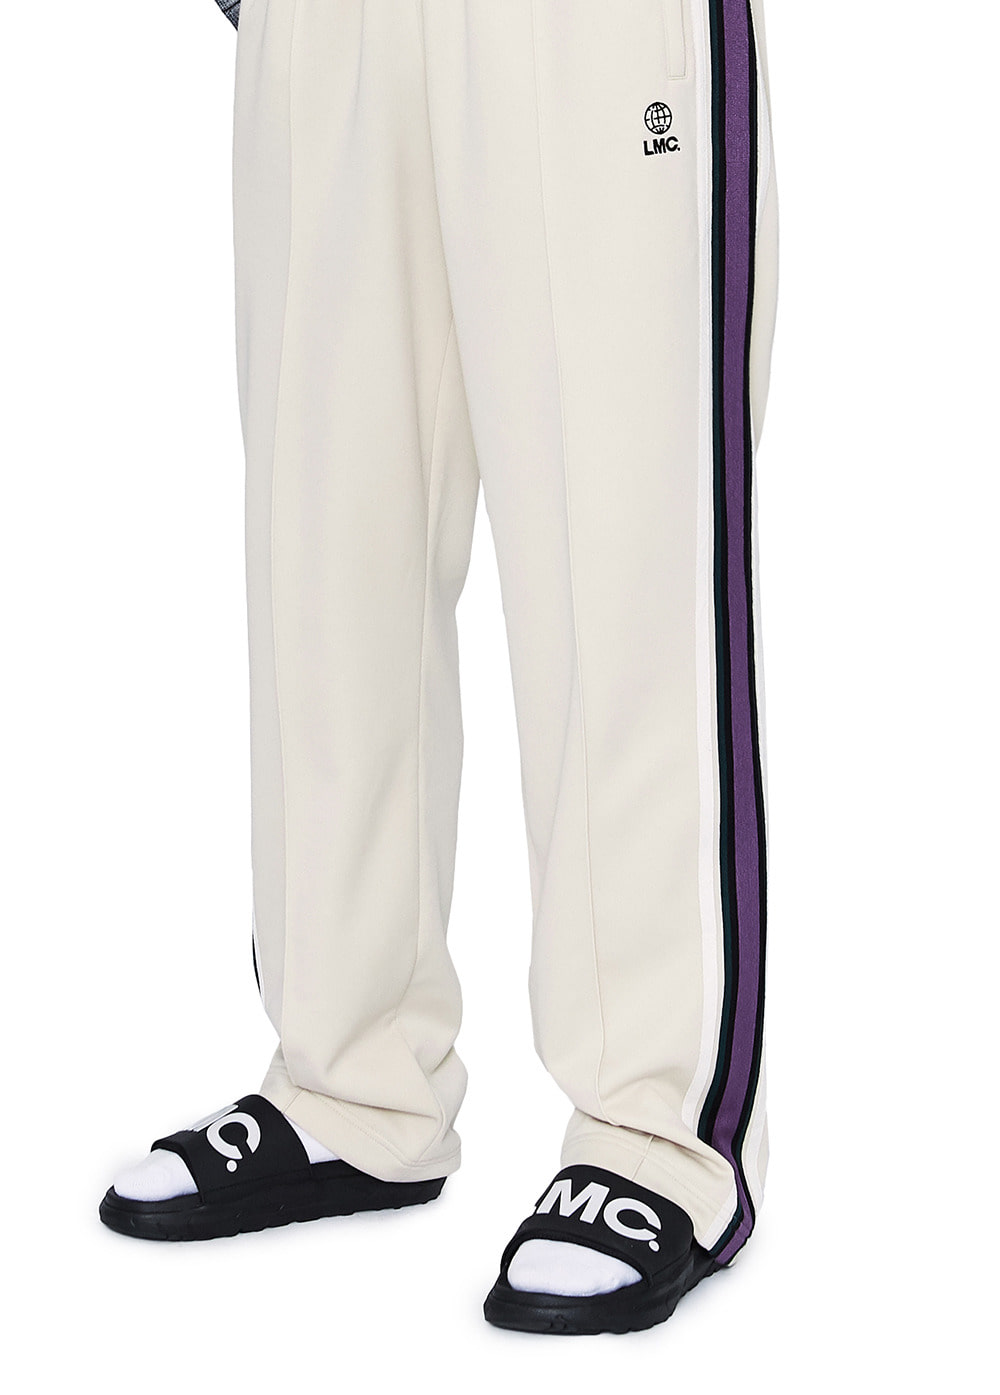 LMC SIDE STRIPED JERSEY PANTS ivory